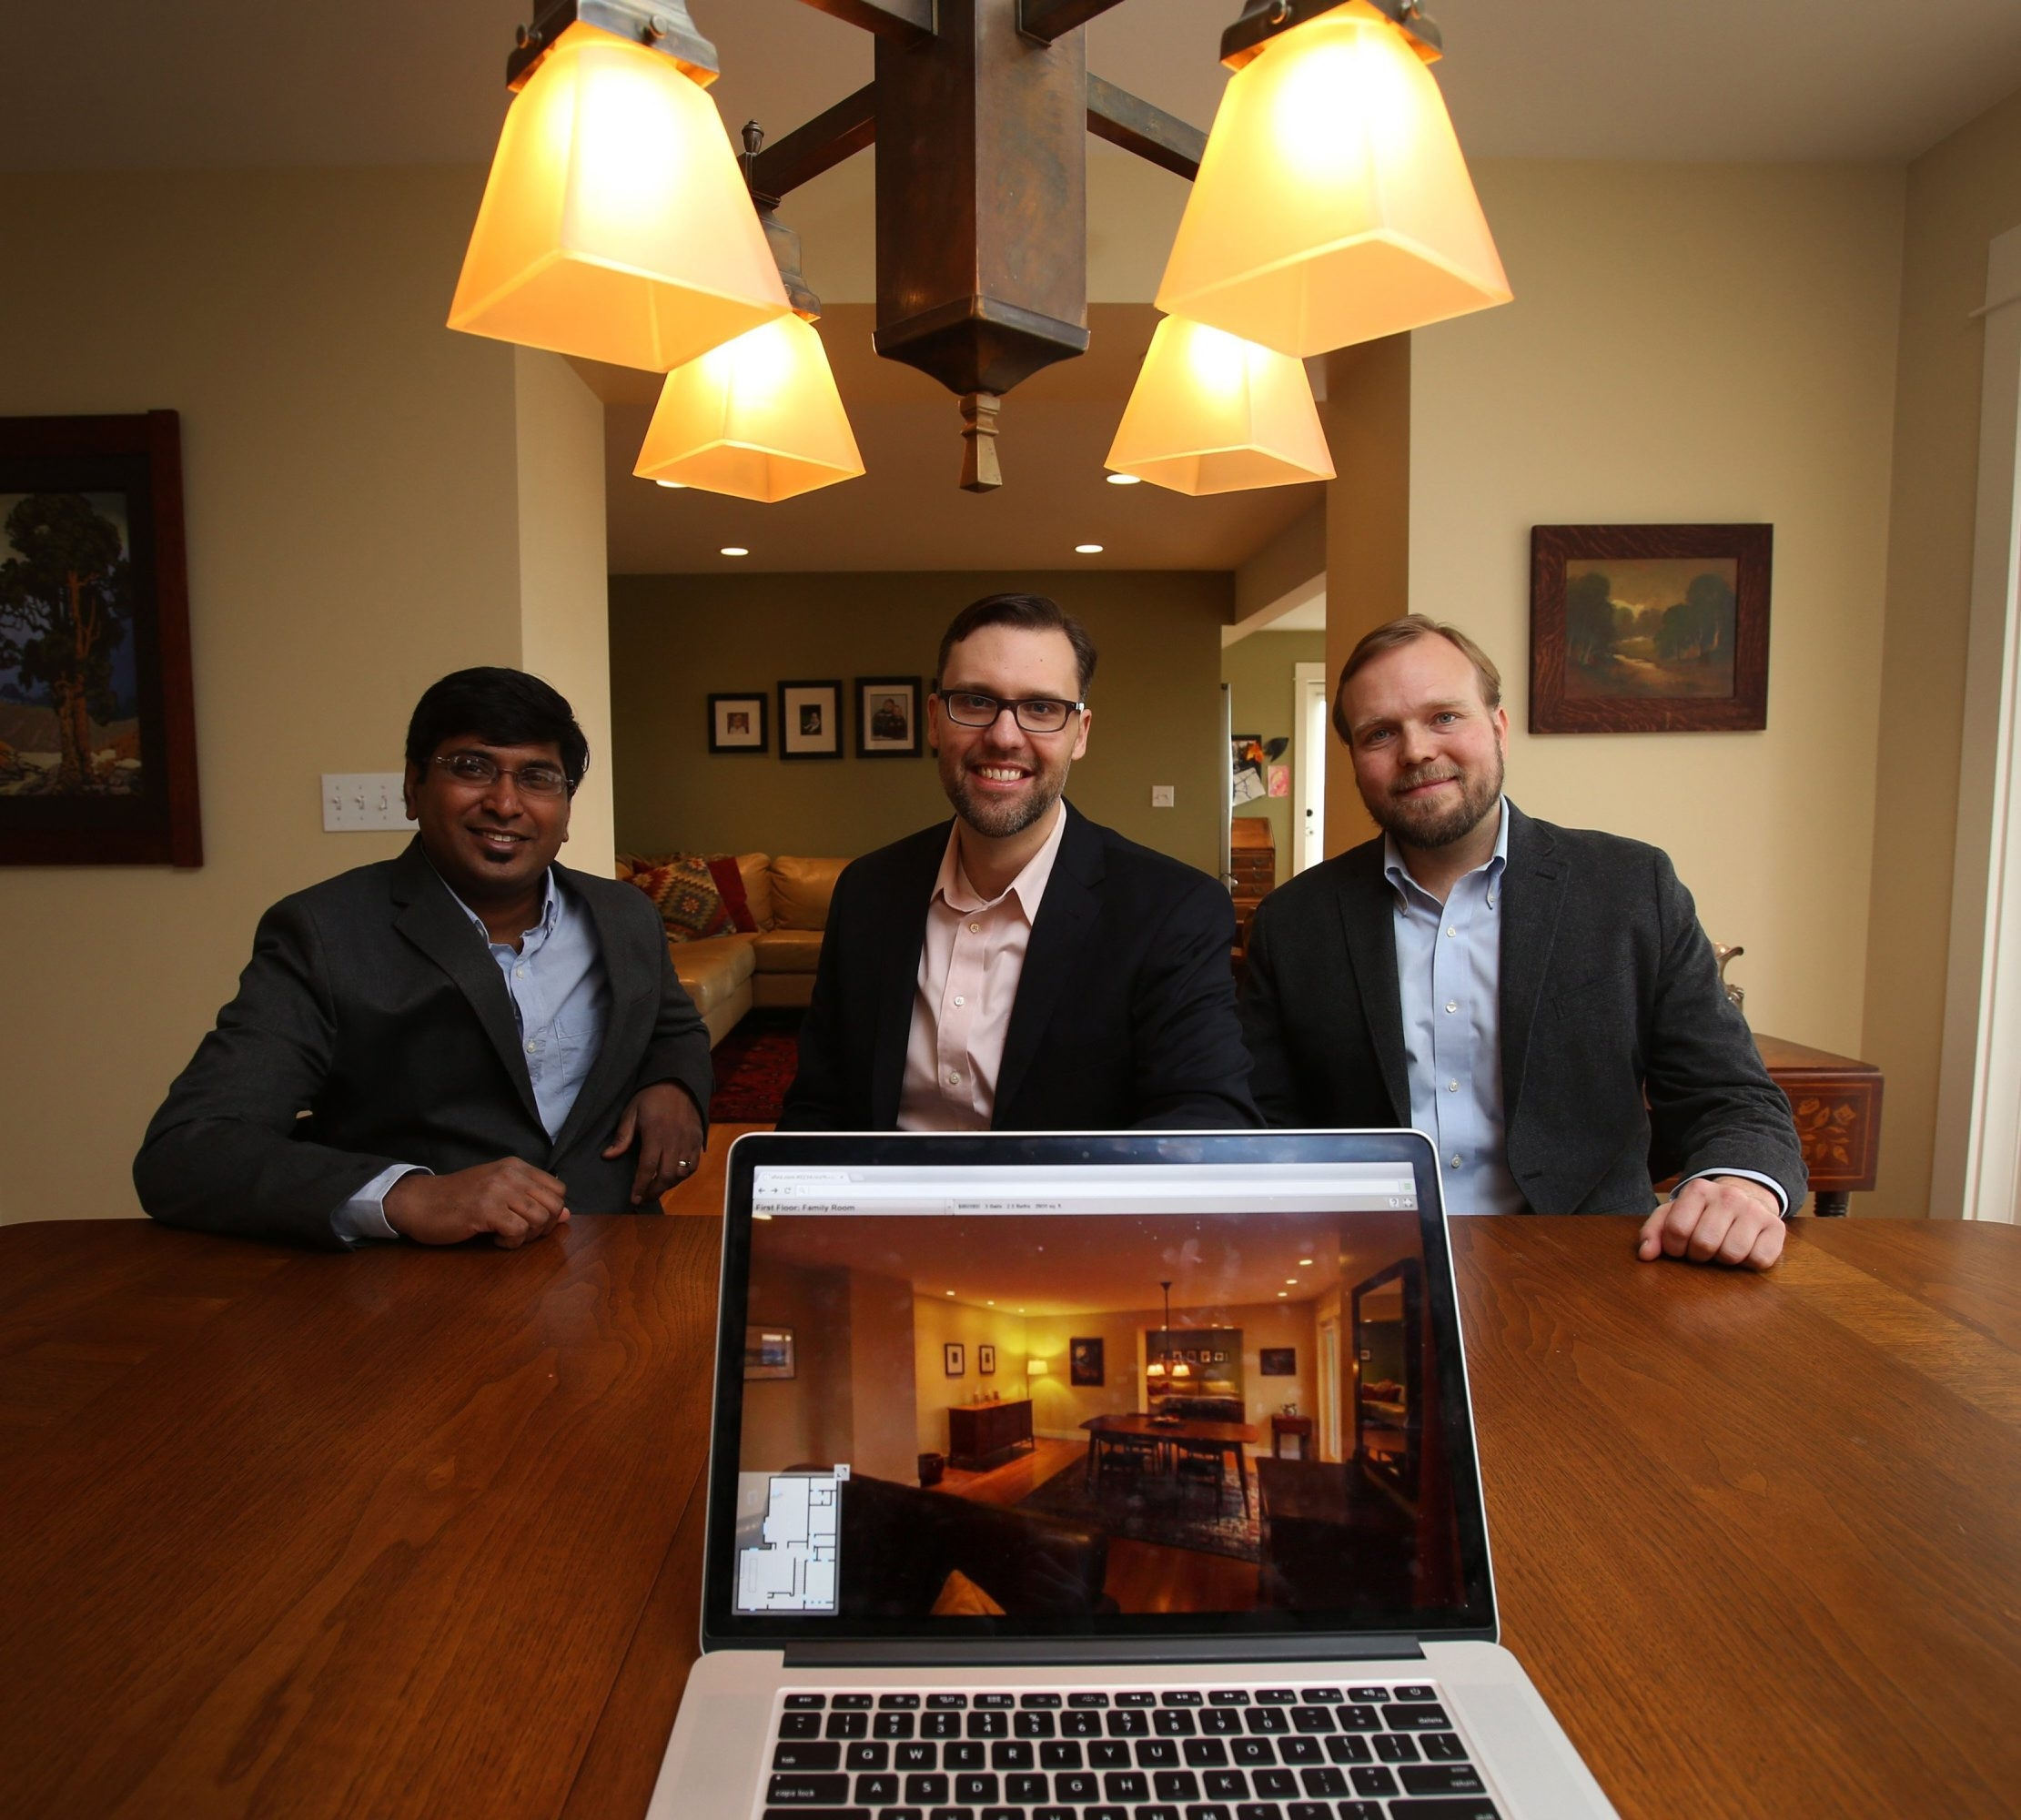 Aravind Kalaiah, left, Rob McGarty and David Eraker of Surefield demonstrate a new type of residential real estate brokerage technology using an interactive tour of a home.